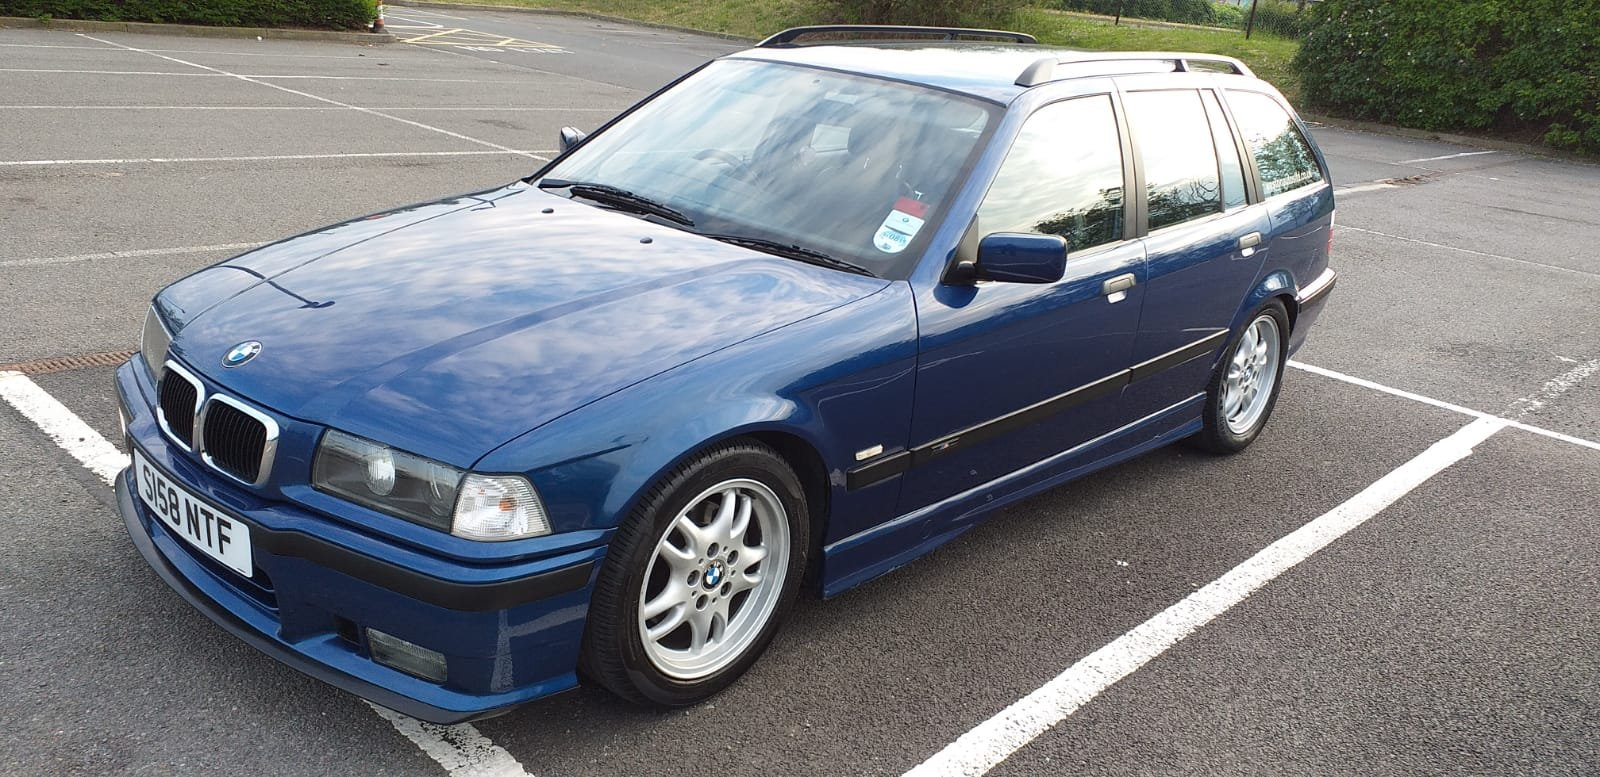 1999 BMW e36 Touring M Sport Avus Blue 73k For Sale (picture 2 of 6)